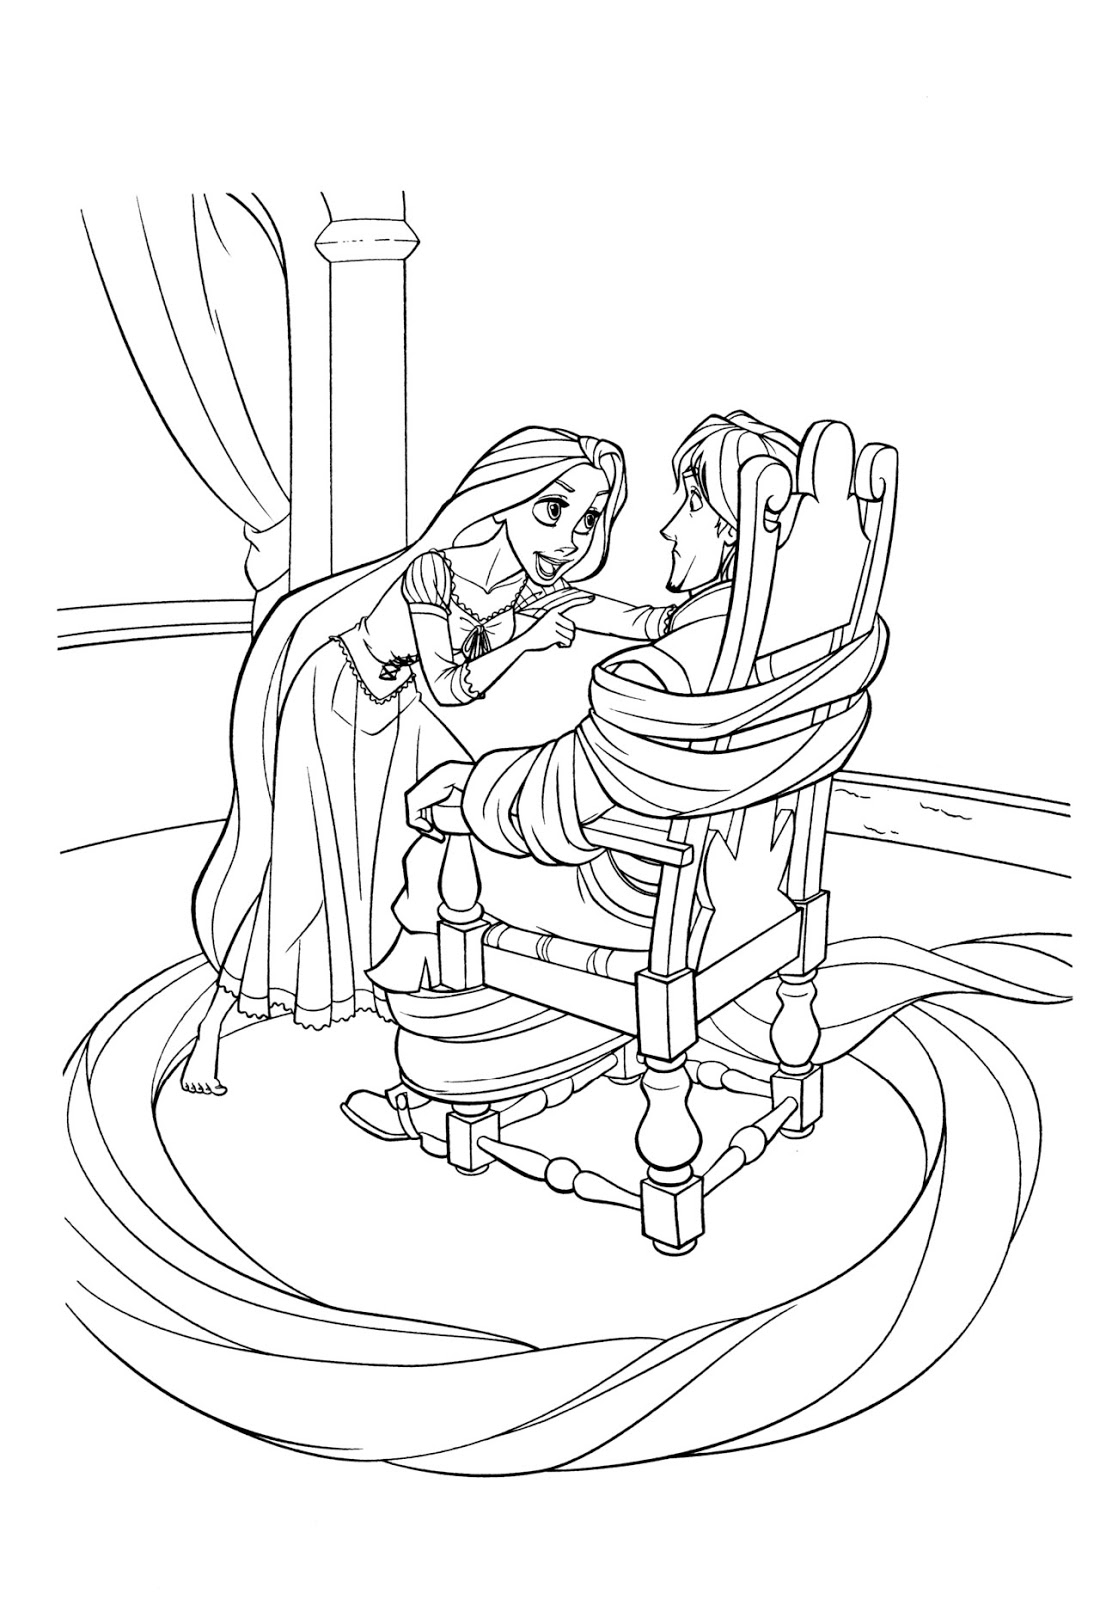 Princess coloring pages tangled - Princess Coloring Pages Tangled 58